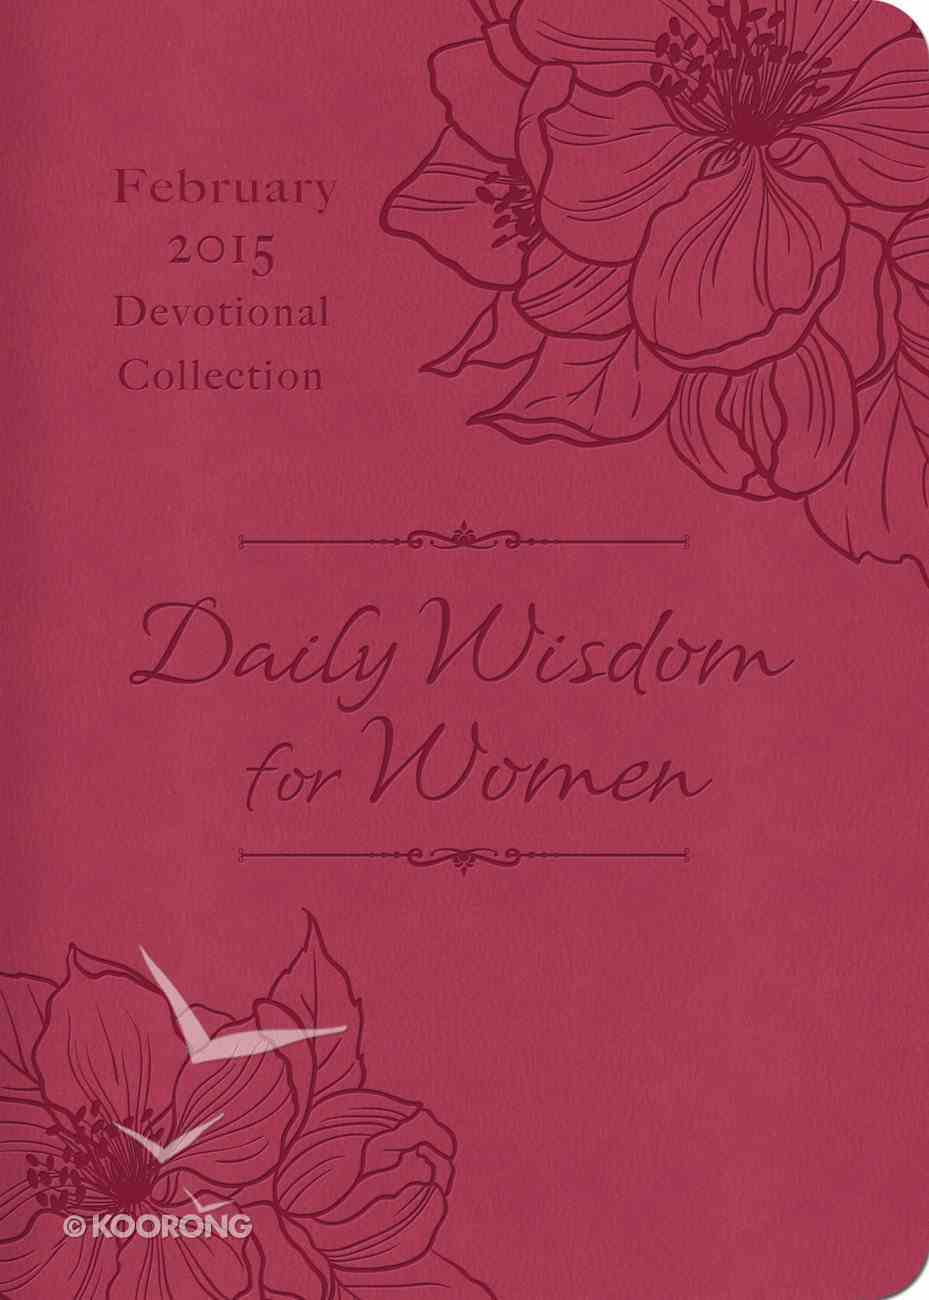 Daily Wisdom For Women 2015 Devotional Collection - February eBook